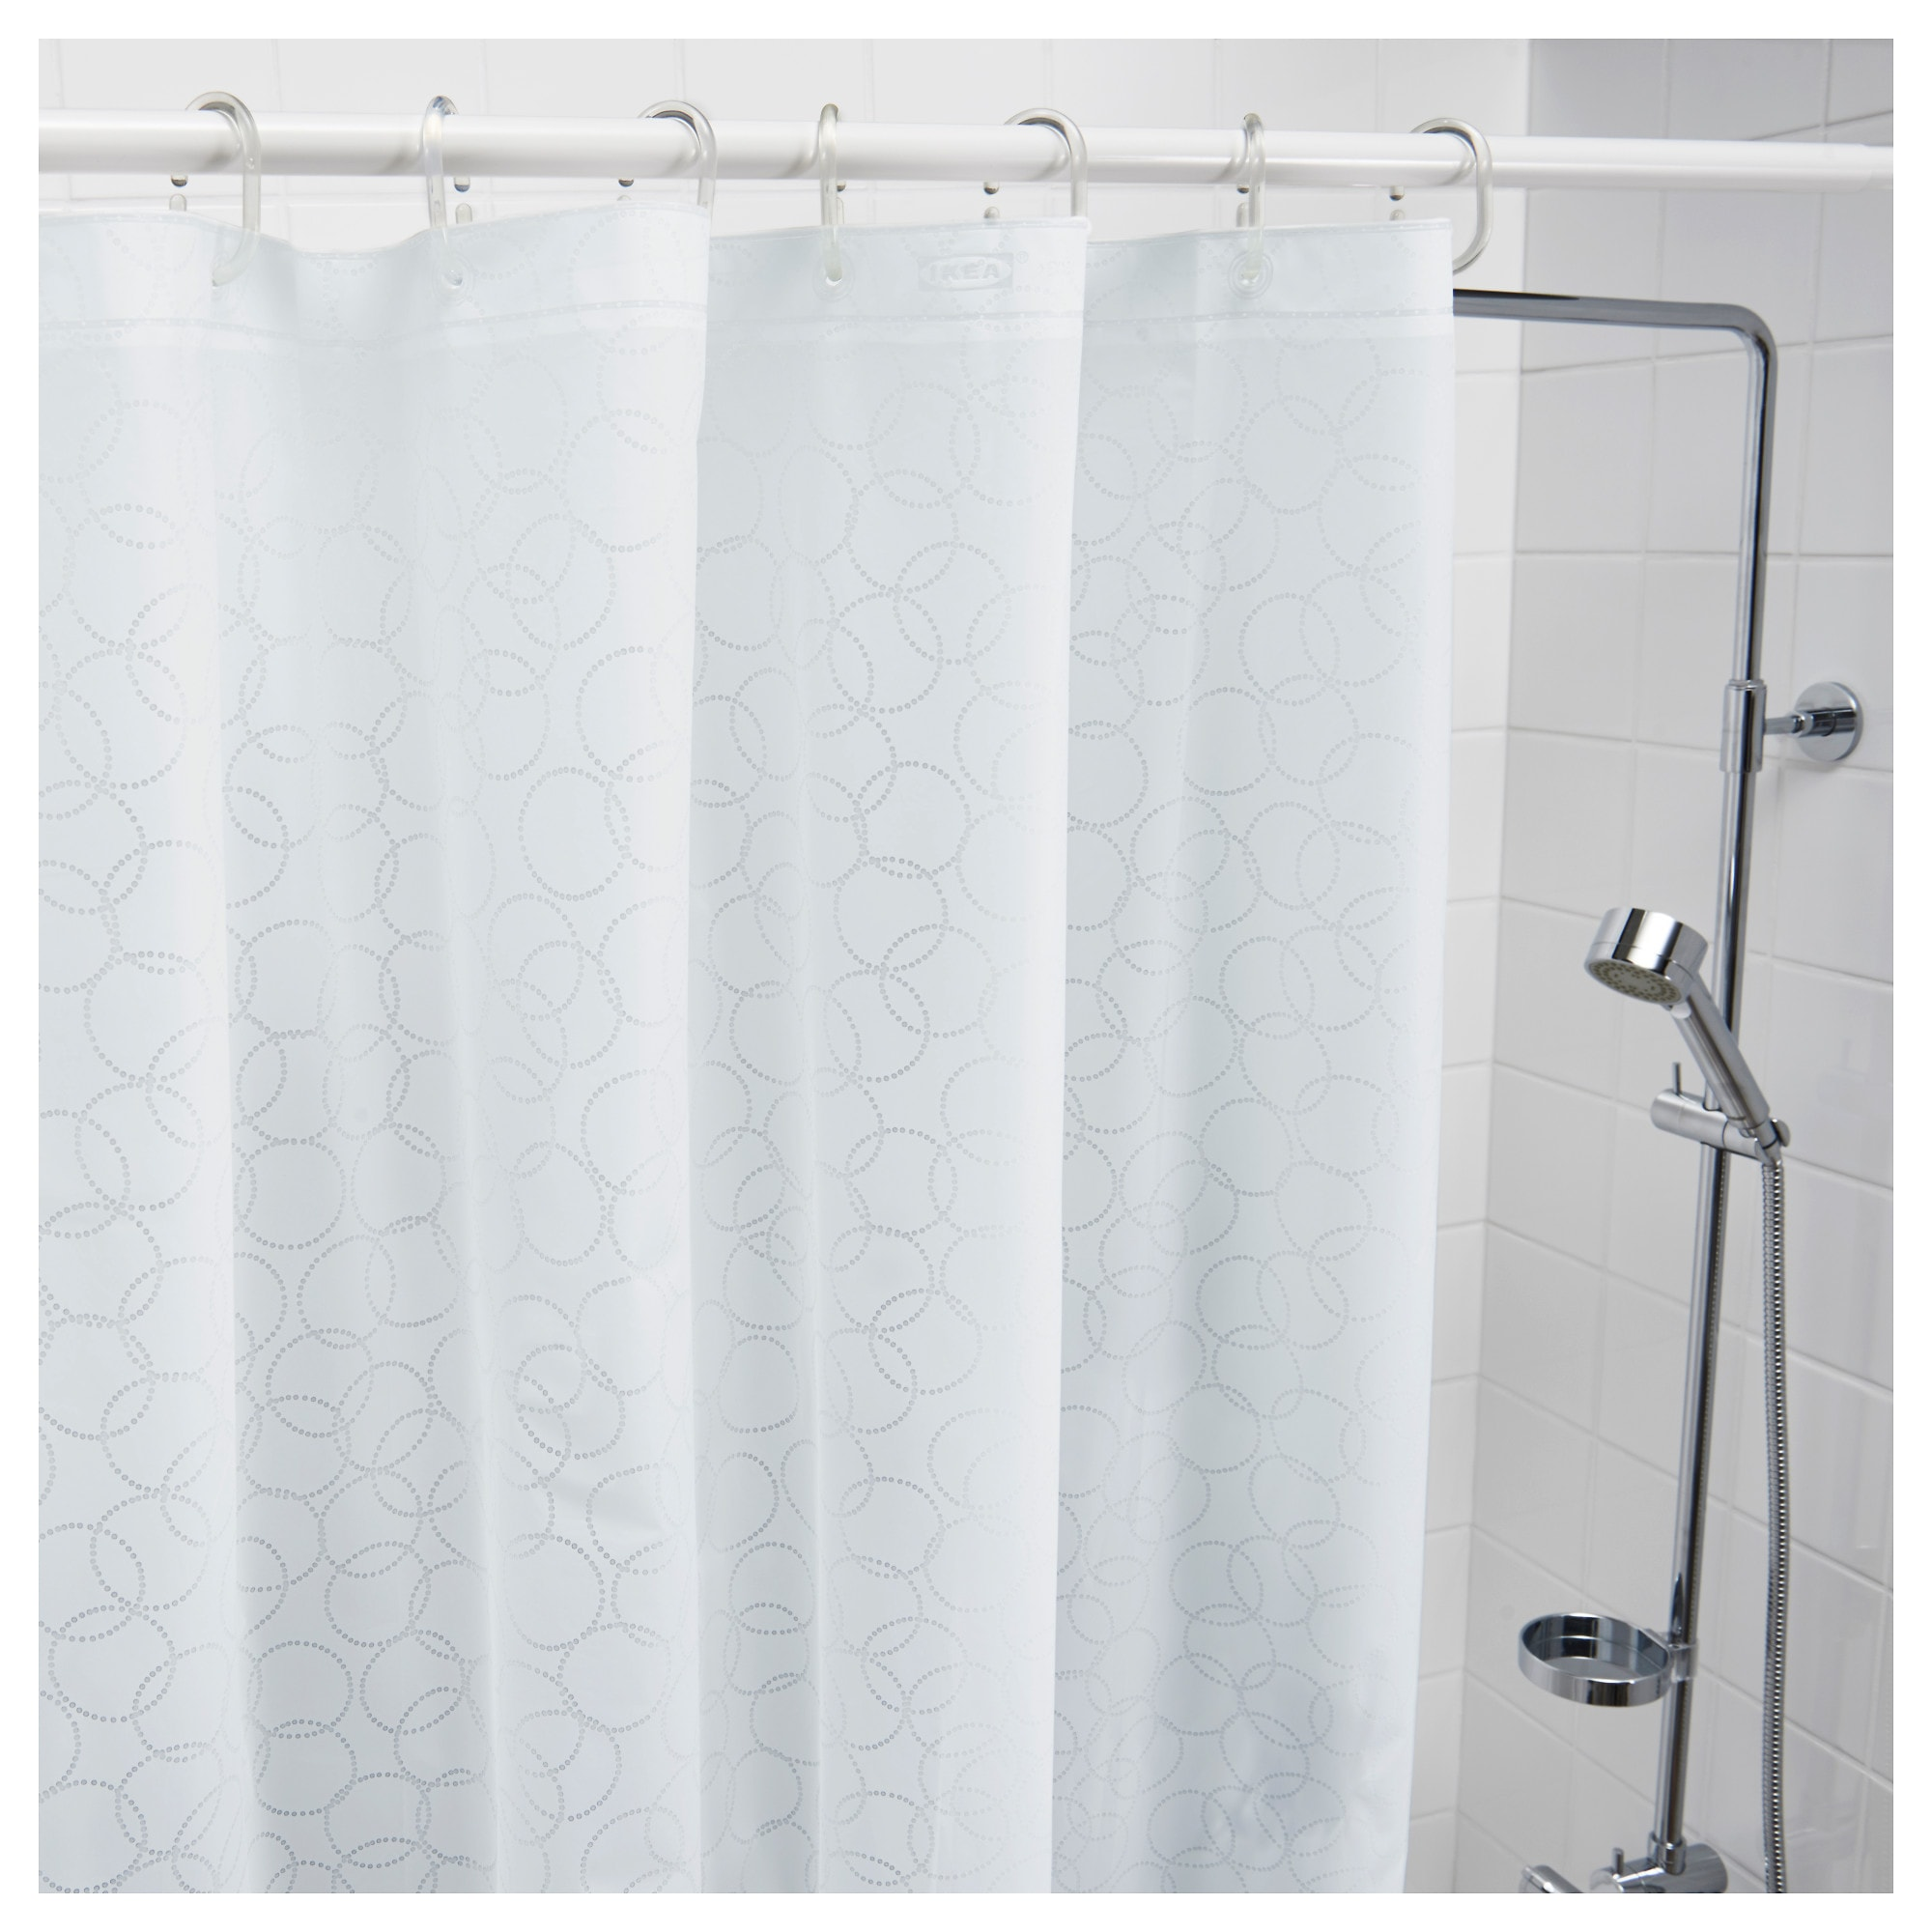 INNAREN Shower curtain - IKEA